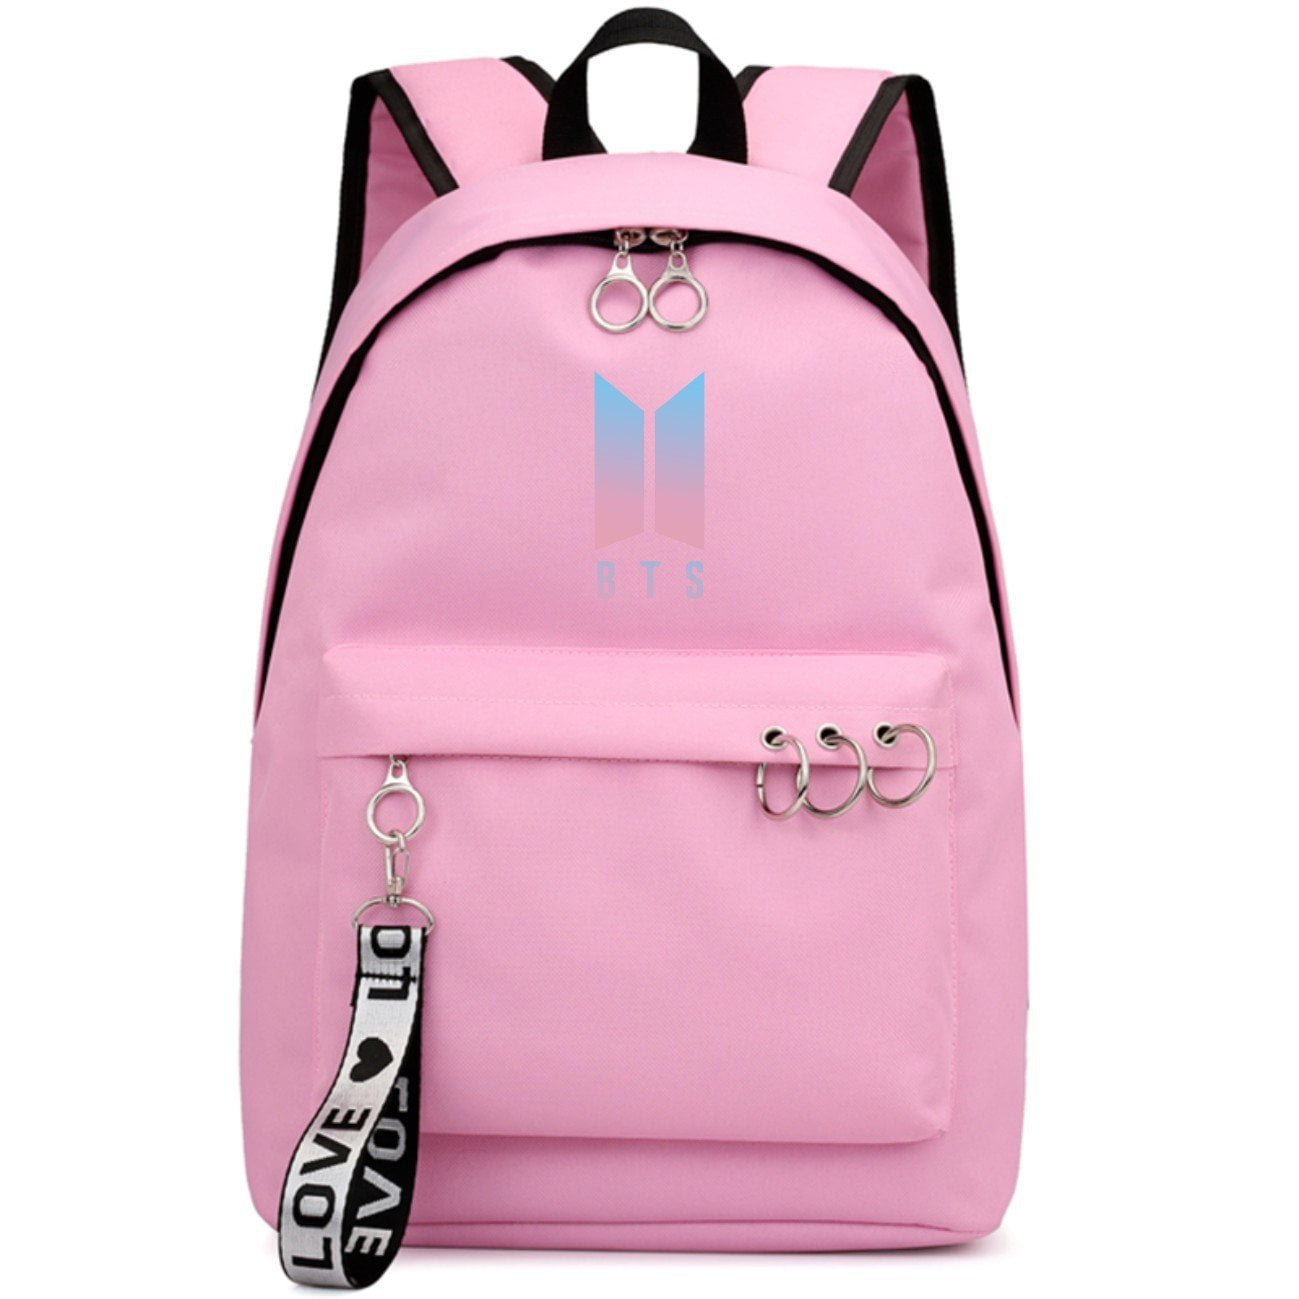 BTS New Logo Large Capacity Backpack / School Bag with Silver Rings in 2 Colours  583071224455#3925845045042